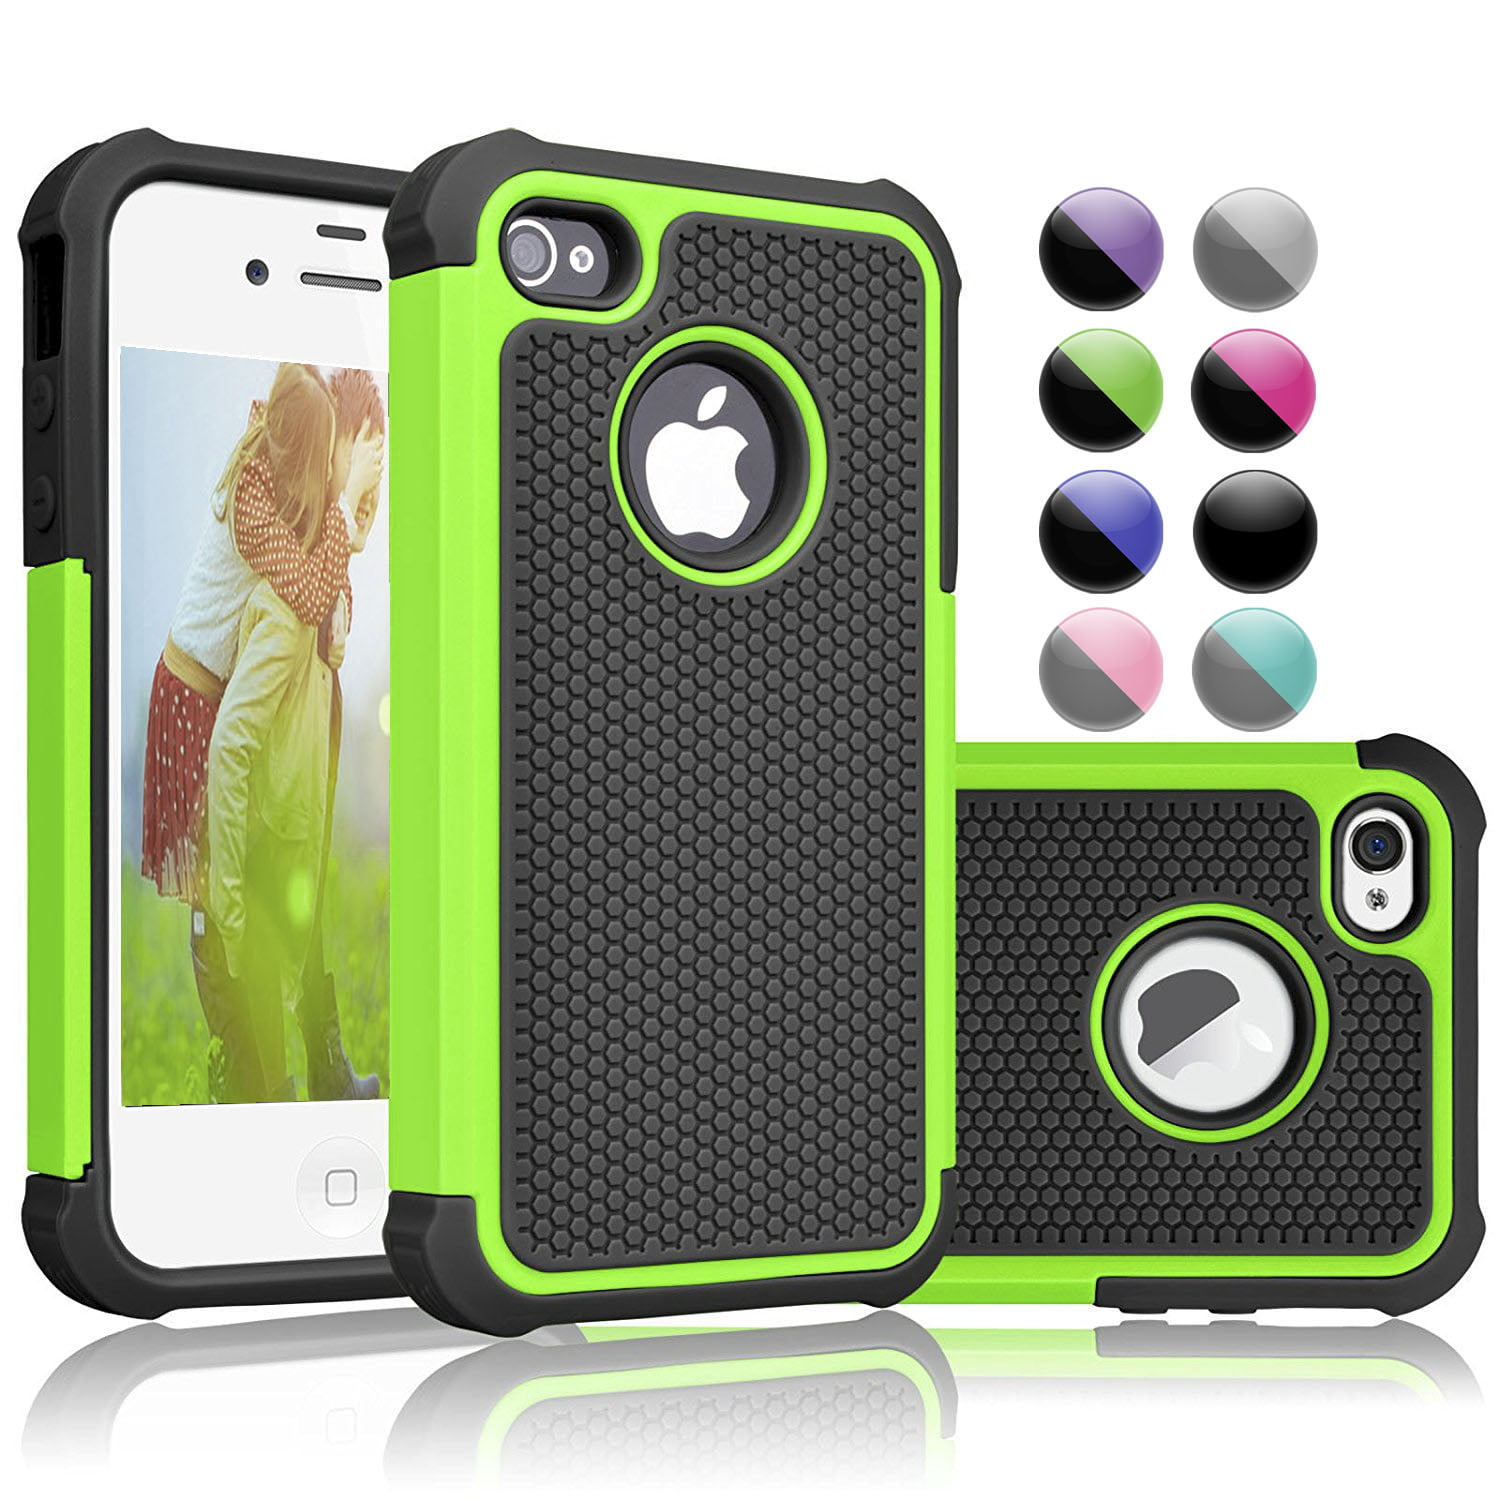 Iphone 5s Case Cover Njjex